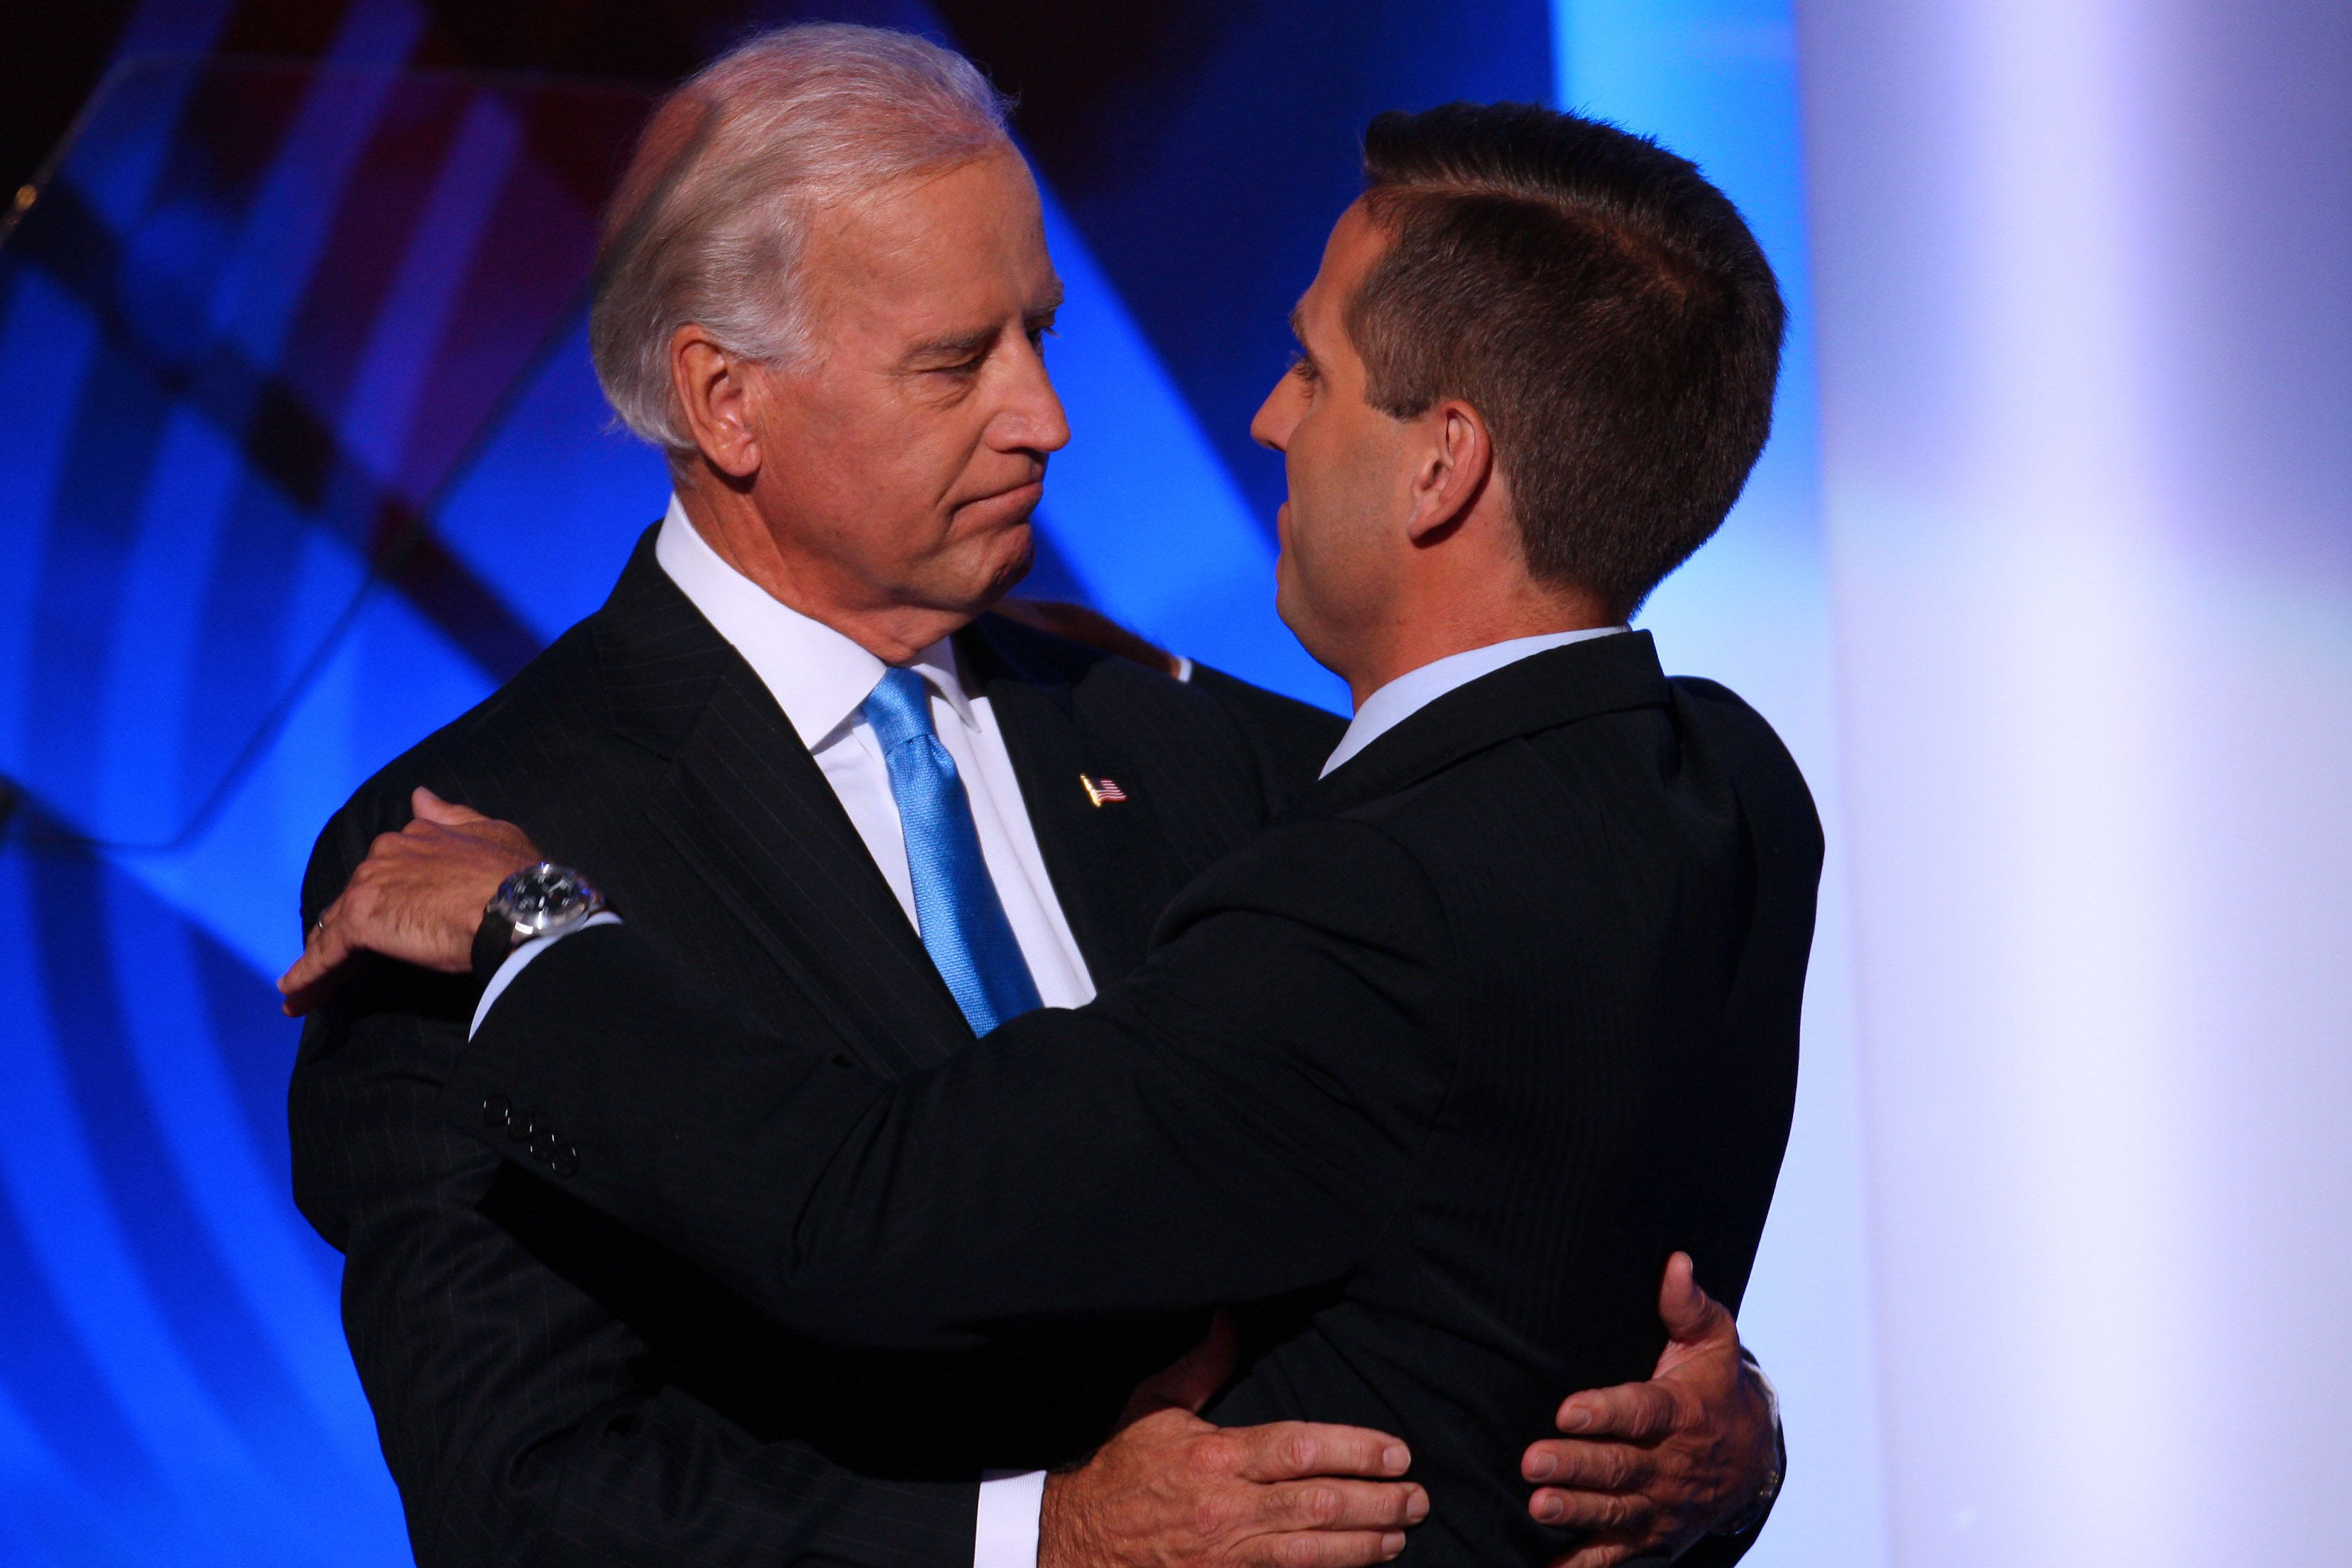 UNITED STATES - AUGUST 27:  Joe Biden, left, a Democratic senator from Delaware and vice presidential running mate of presidential candidate Senator Barack Obama of Illinois, hugs his son Joseph 'Beau' Biden, attorney general of Delaware, on day three of the Democratic National Convention (DNC) in Denver, Colorado, U.S., on Wednesday, Aug. 27, 2008. The DNC ends on Aug. 28.  (Photo by Matthew Staver/Bloomberg via Getty Images)